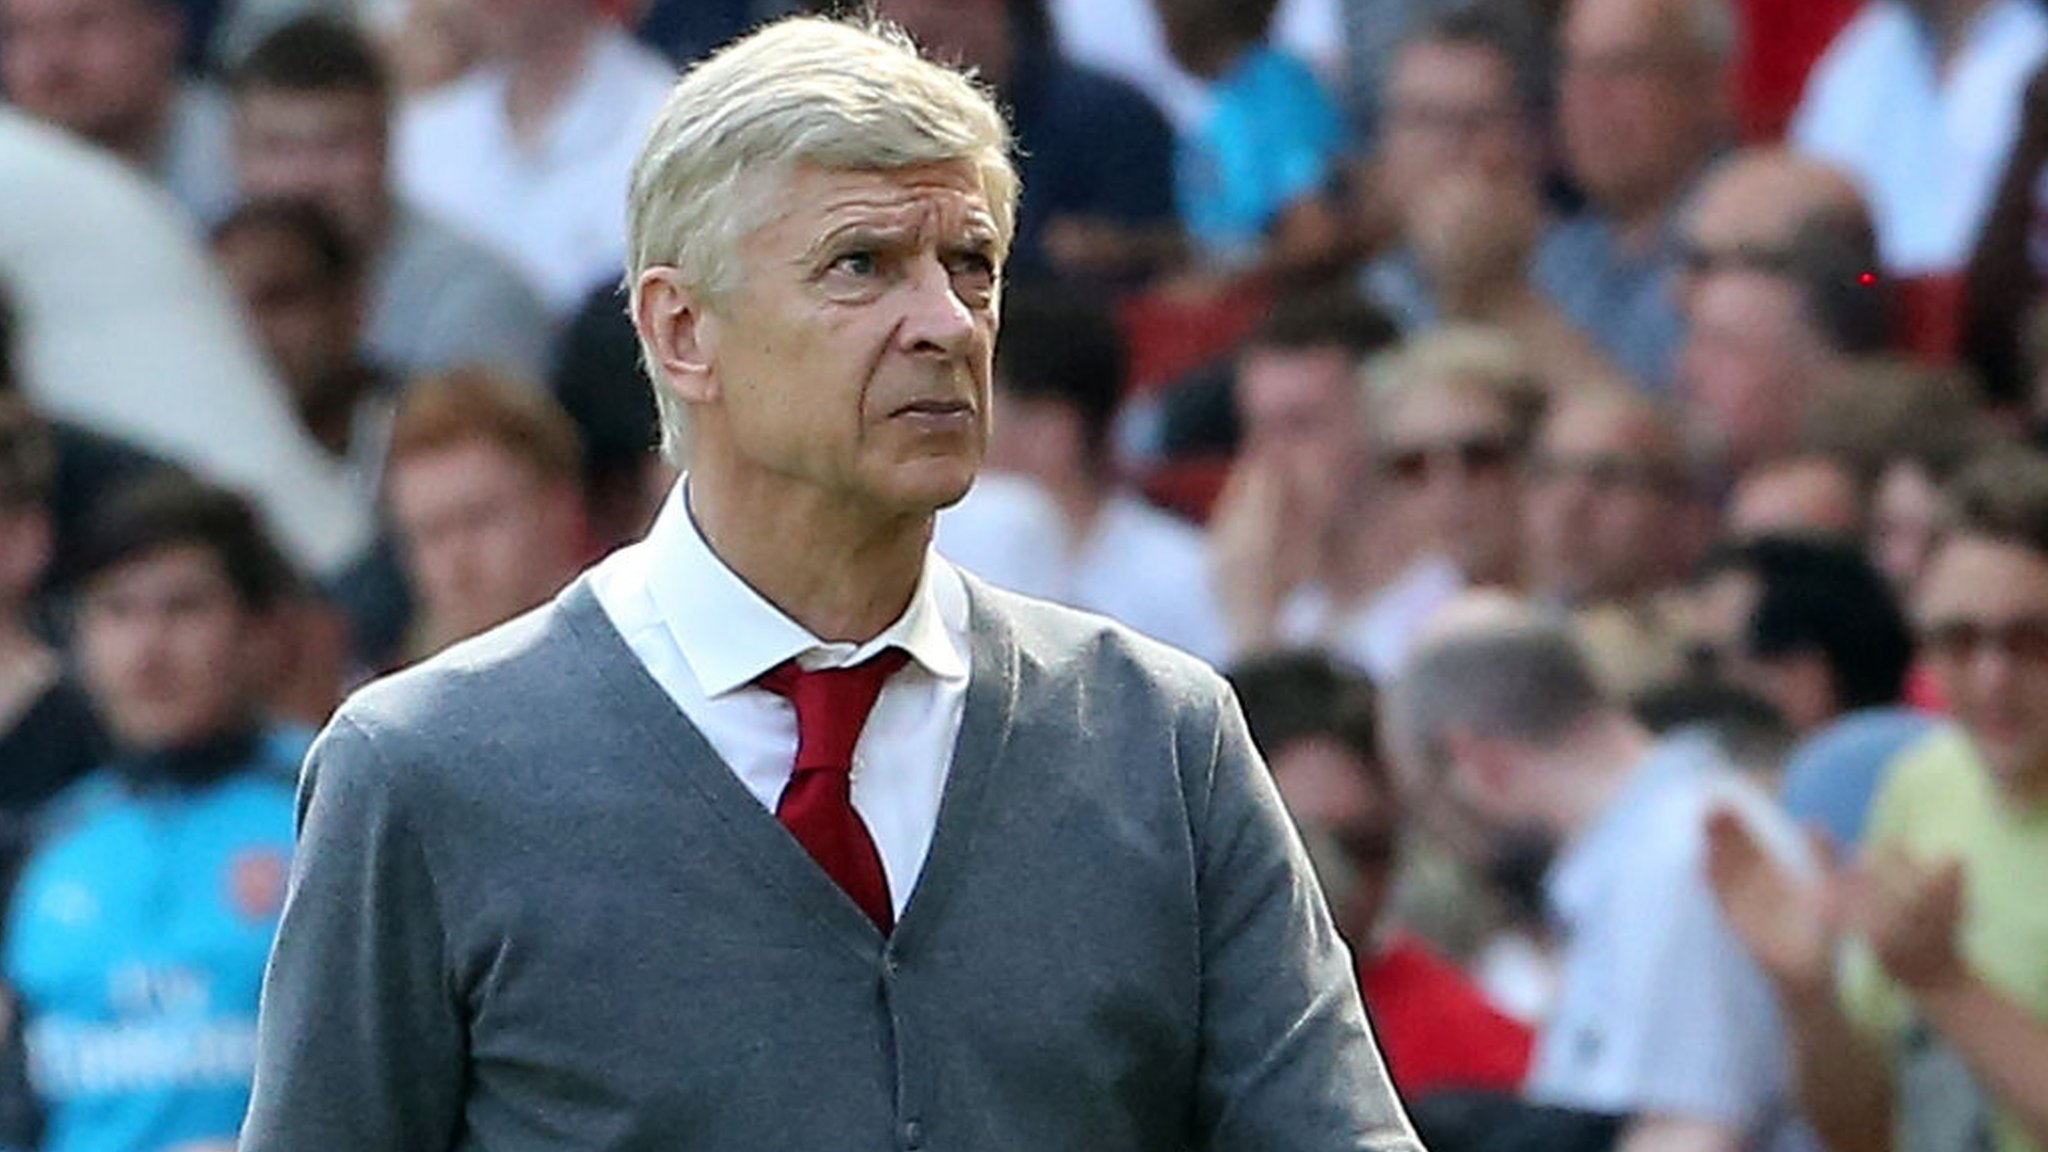 Arsene Wenger: Arsenal hurt by lack of unity, says departing manager | BBC